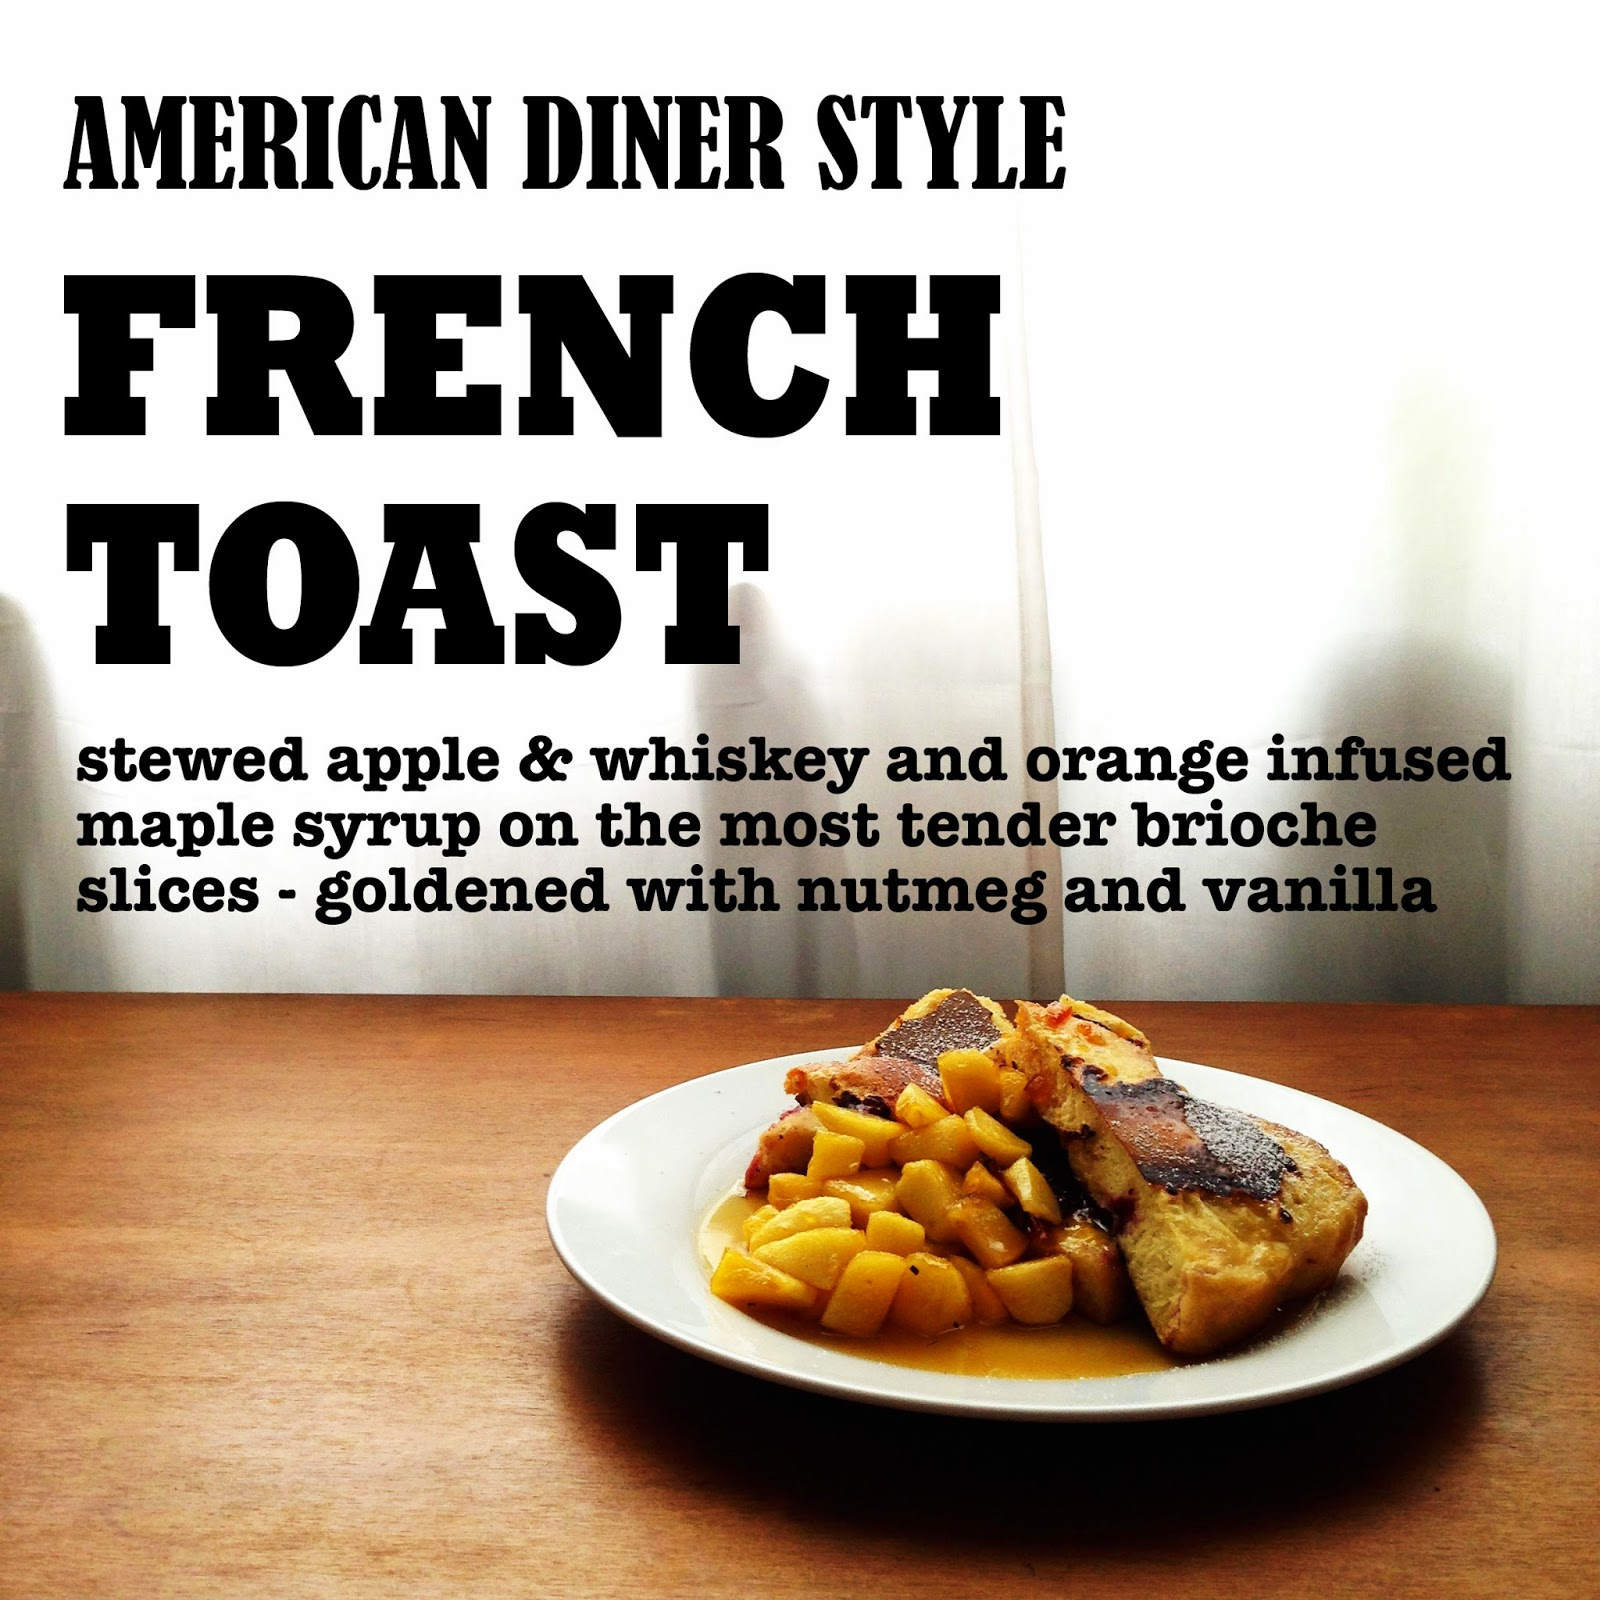 picture perfect american style brunch. { golden brioche french toast with diced apple, stewed on whiskey-orange infused maple syrup }